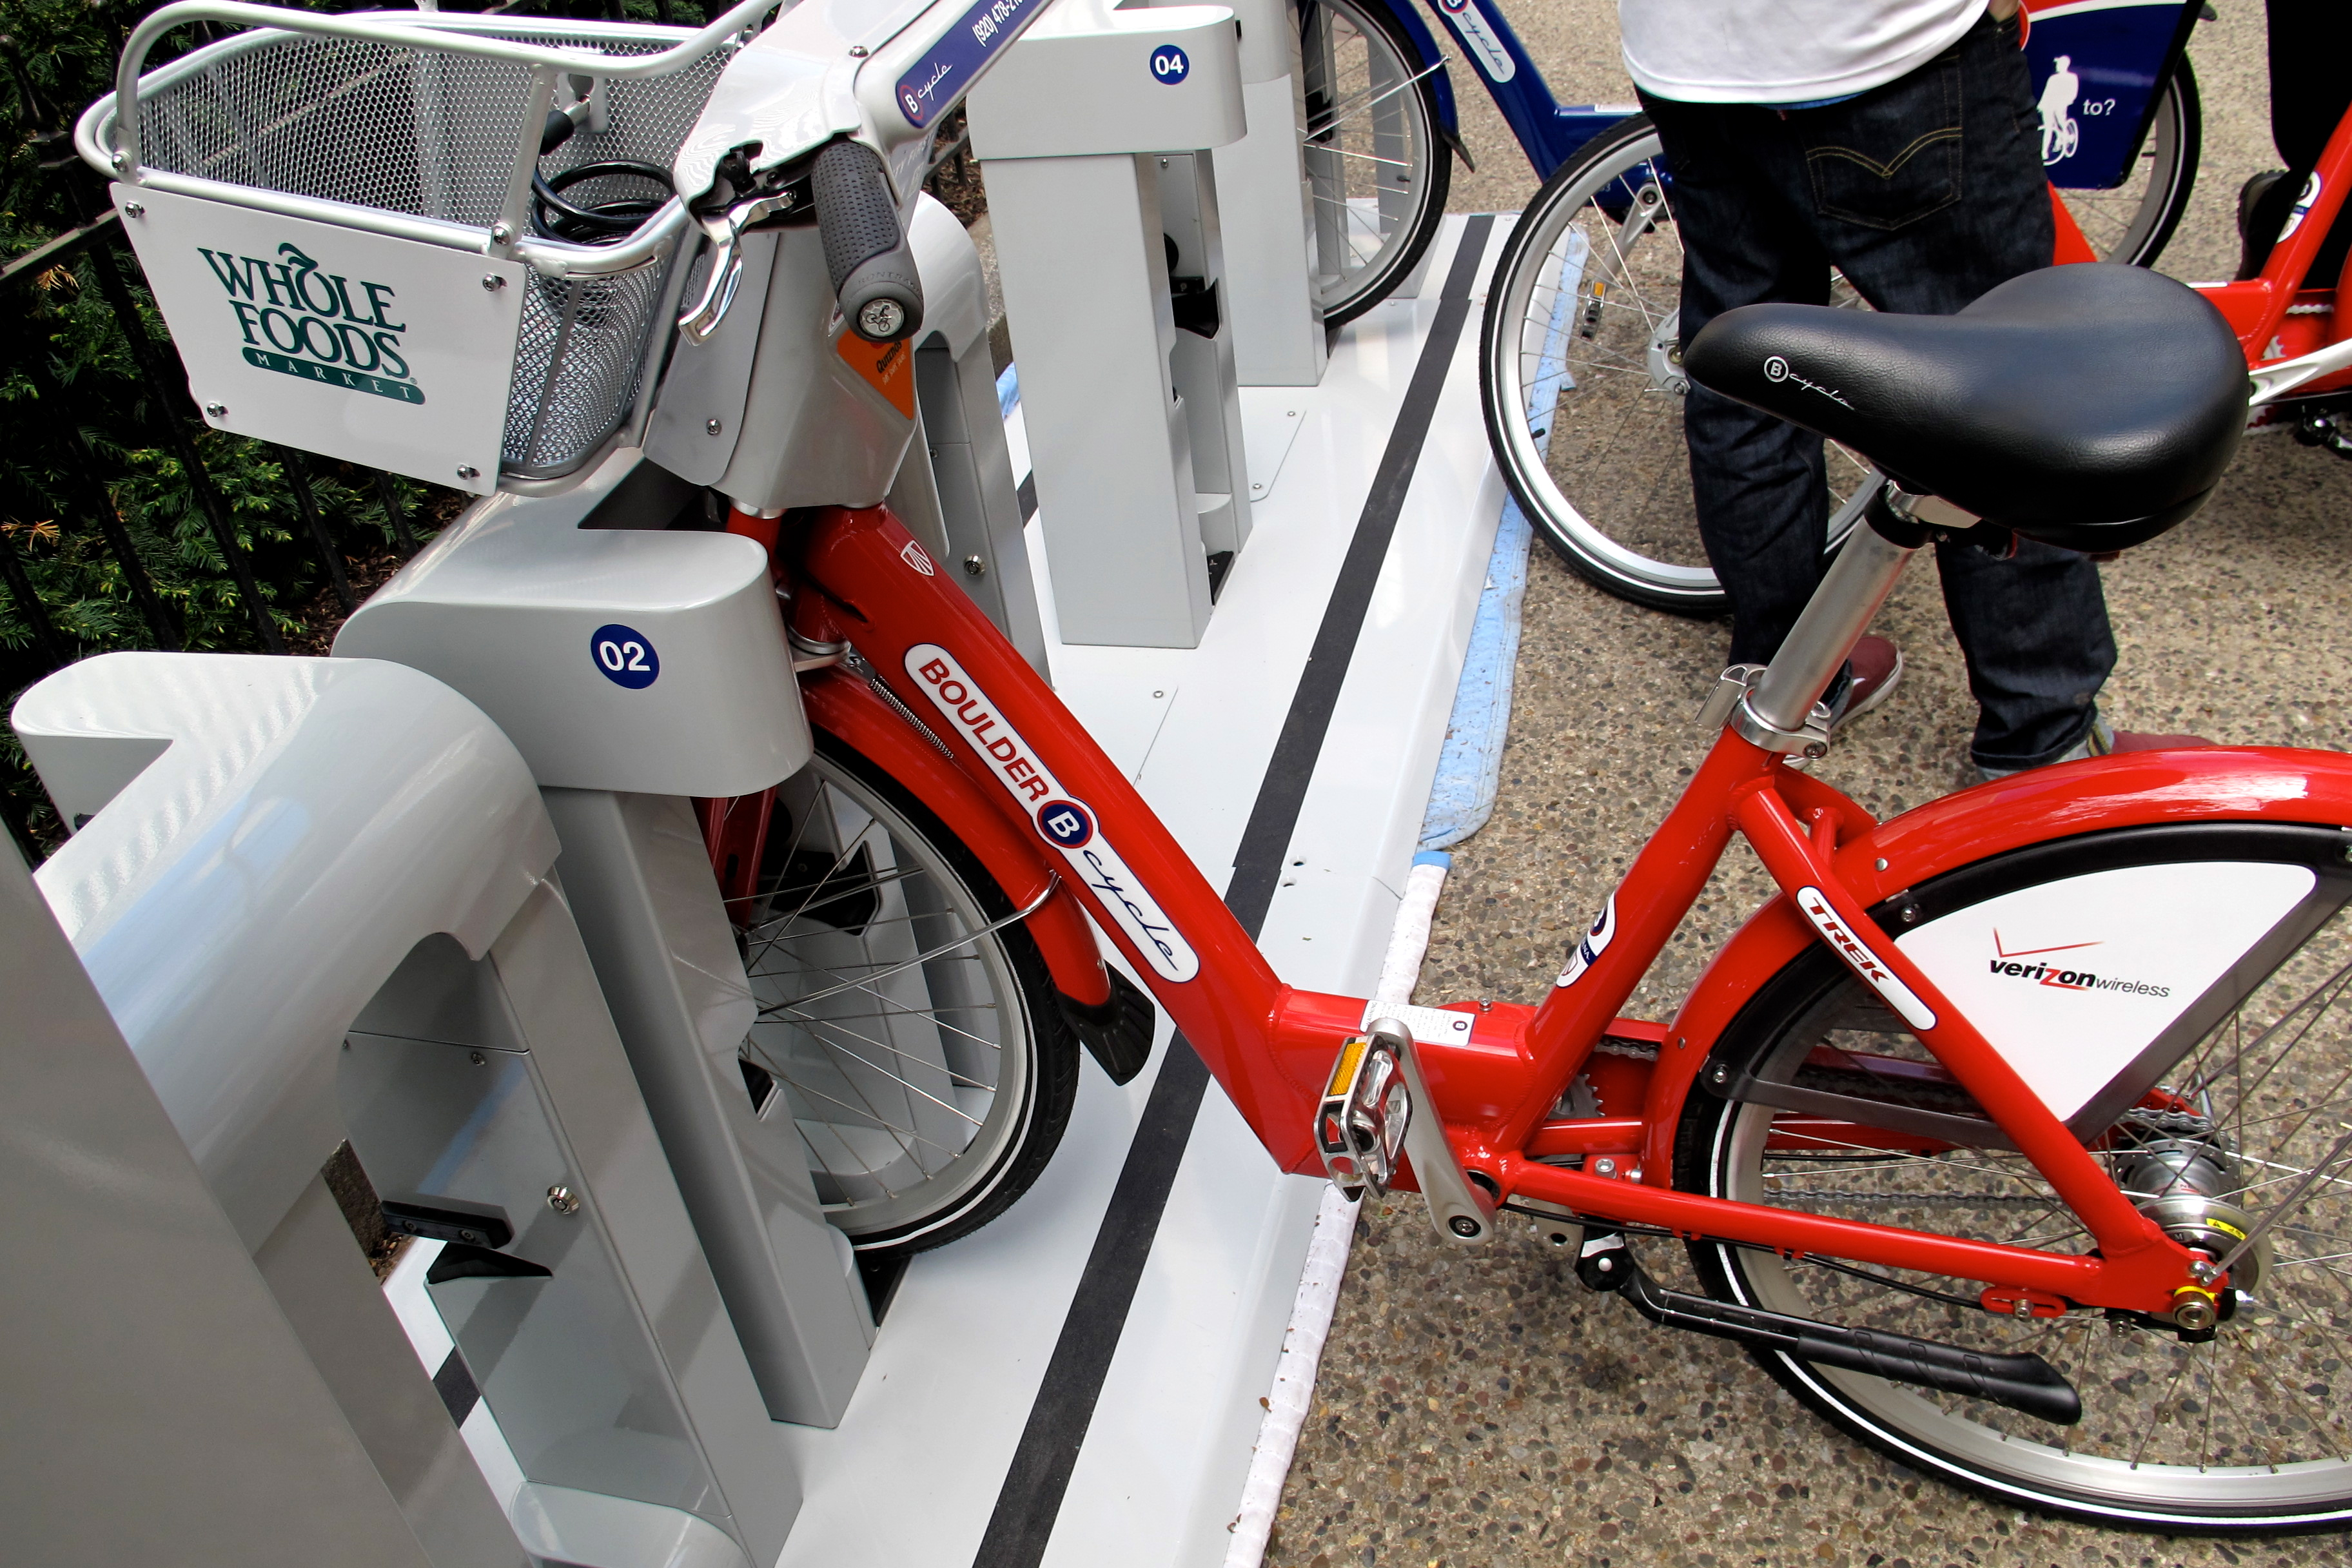 A B-cycle model from Boulder, showing two corporate sponsorships.